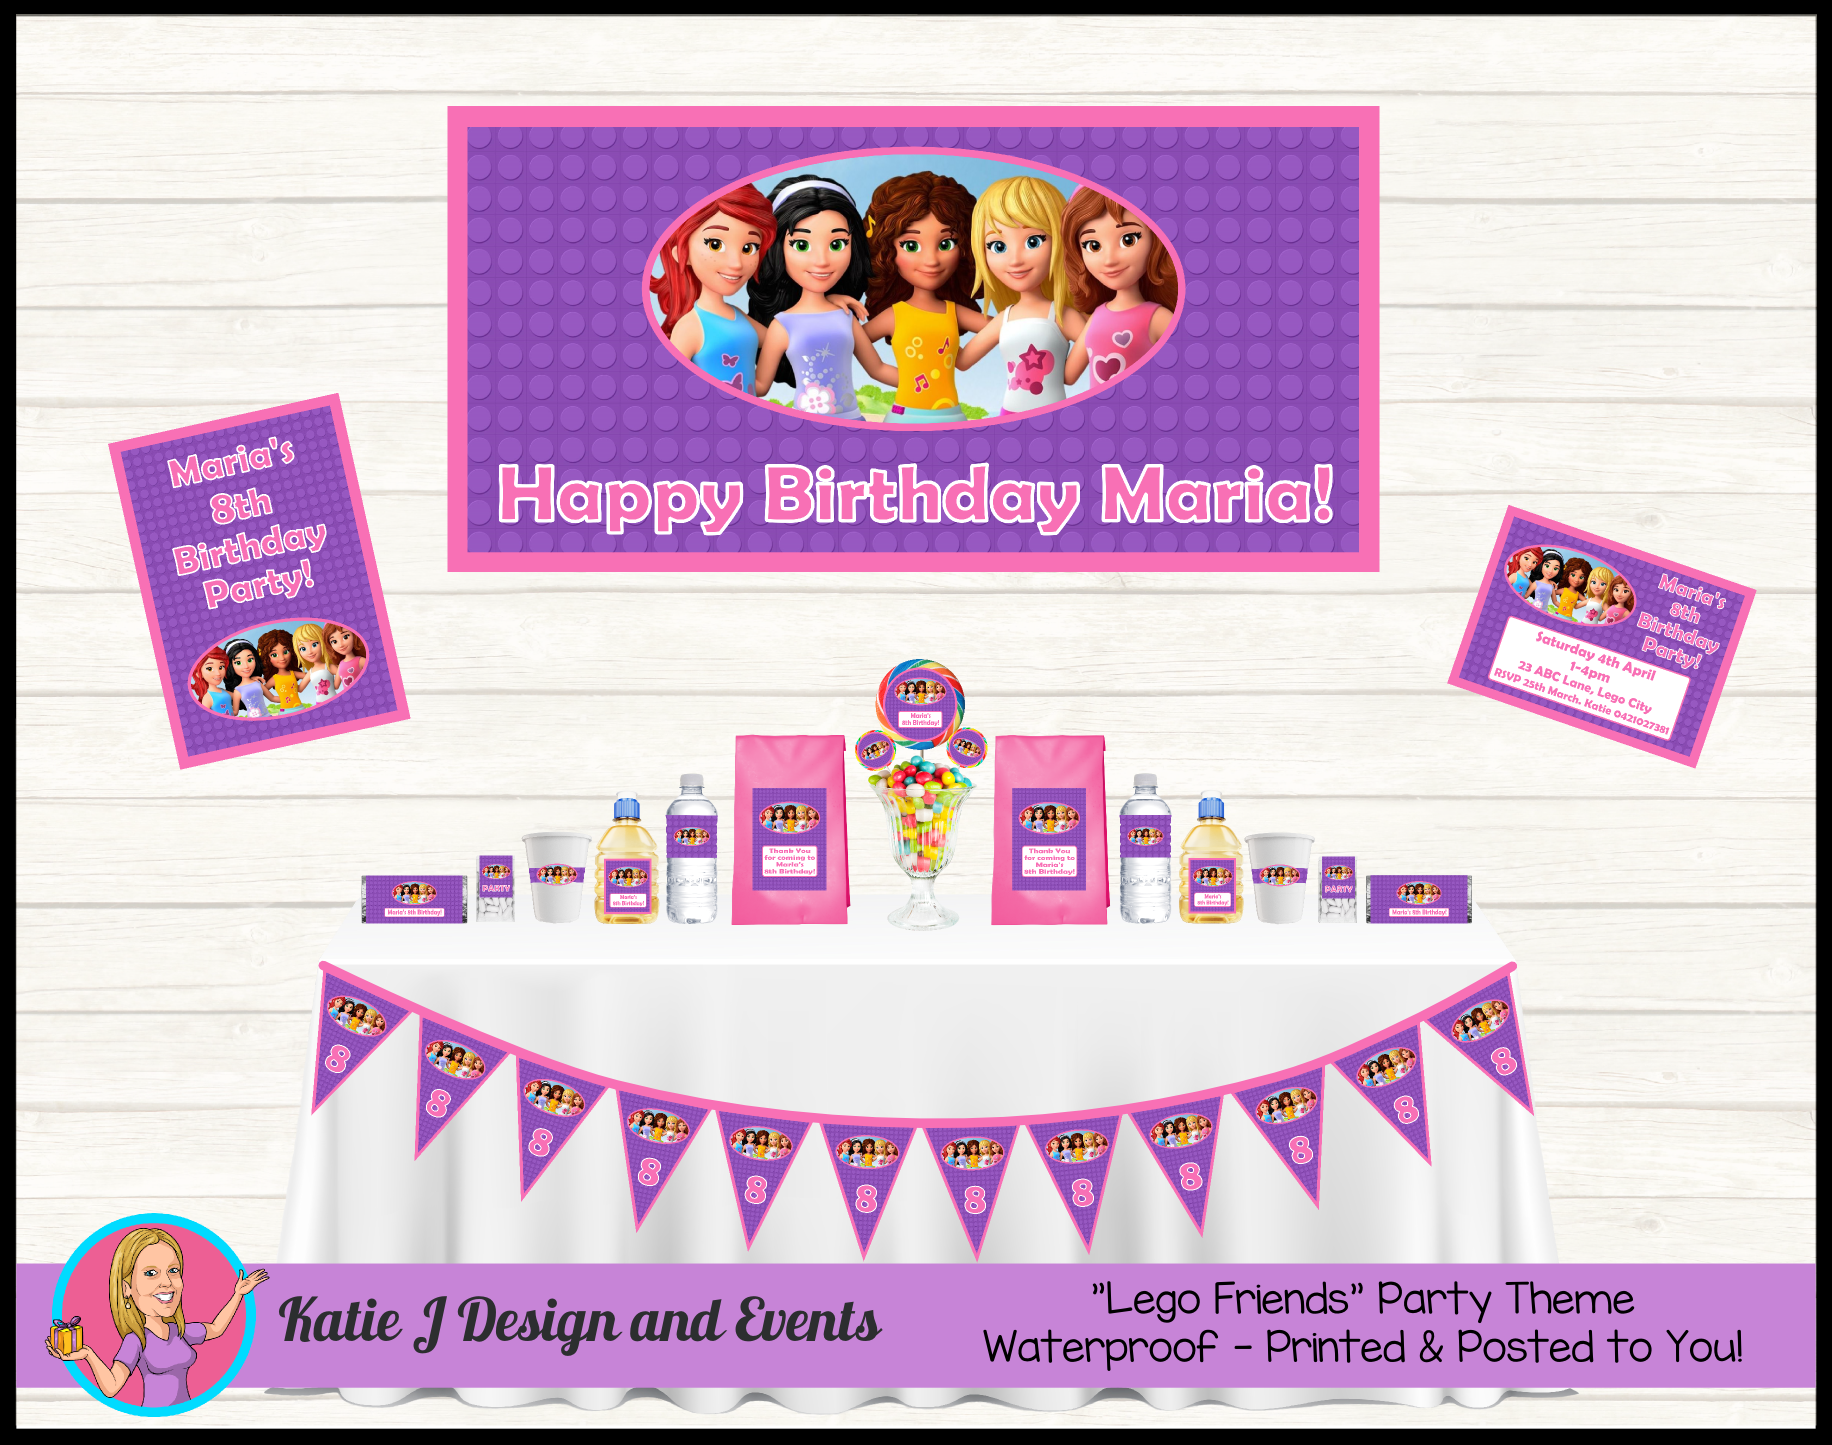 Personalised Lego Friends Birthday Party Decorations Lego Friends Birthday Party Lego Friends Party Lego Friends Birthday